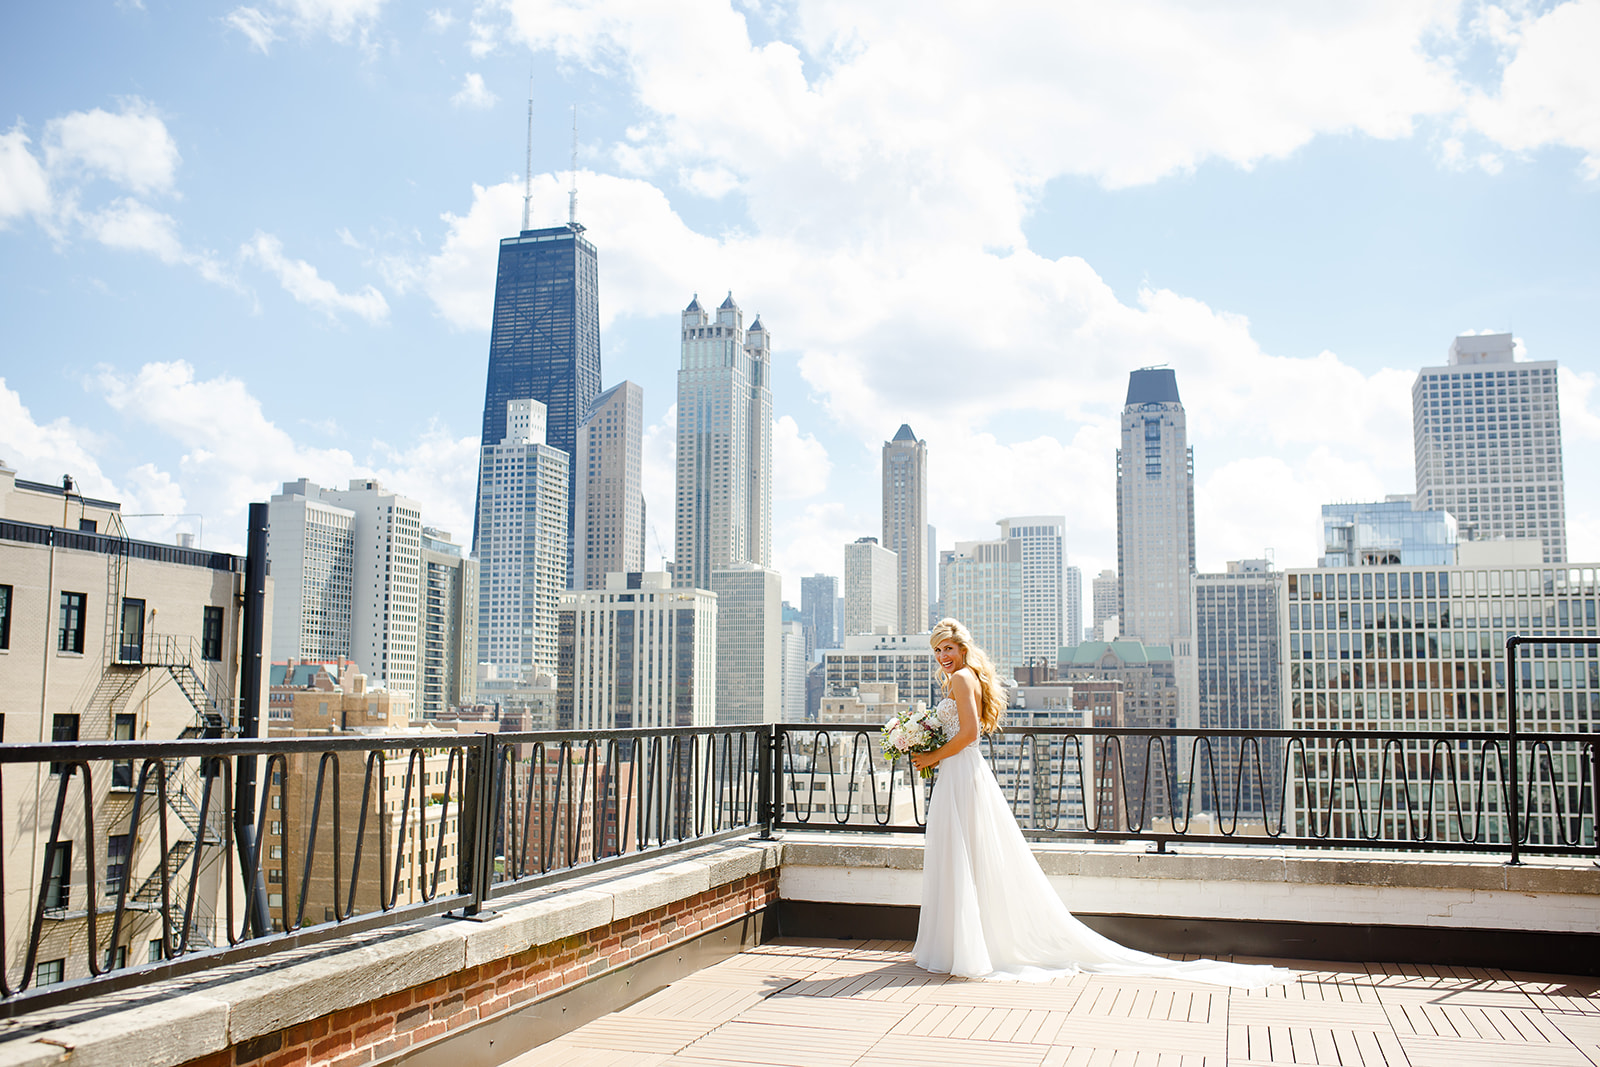 The bride looked stunning here on the rooftop of the Ambassador hotel. The couple loves Chicago's rooftops and knew they wanted their wedding to incorporate some of their favorite spots and treat their guests to the setting of a Chicago summertime reception under the stars and city lights.